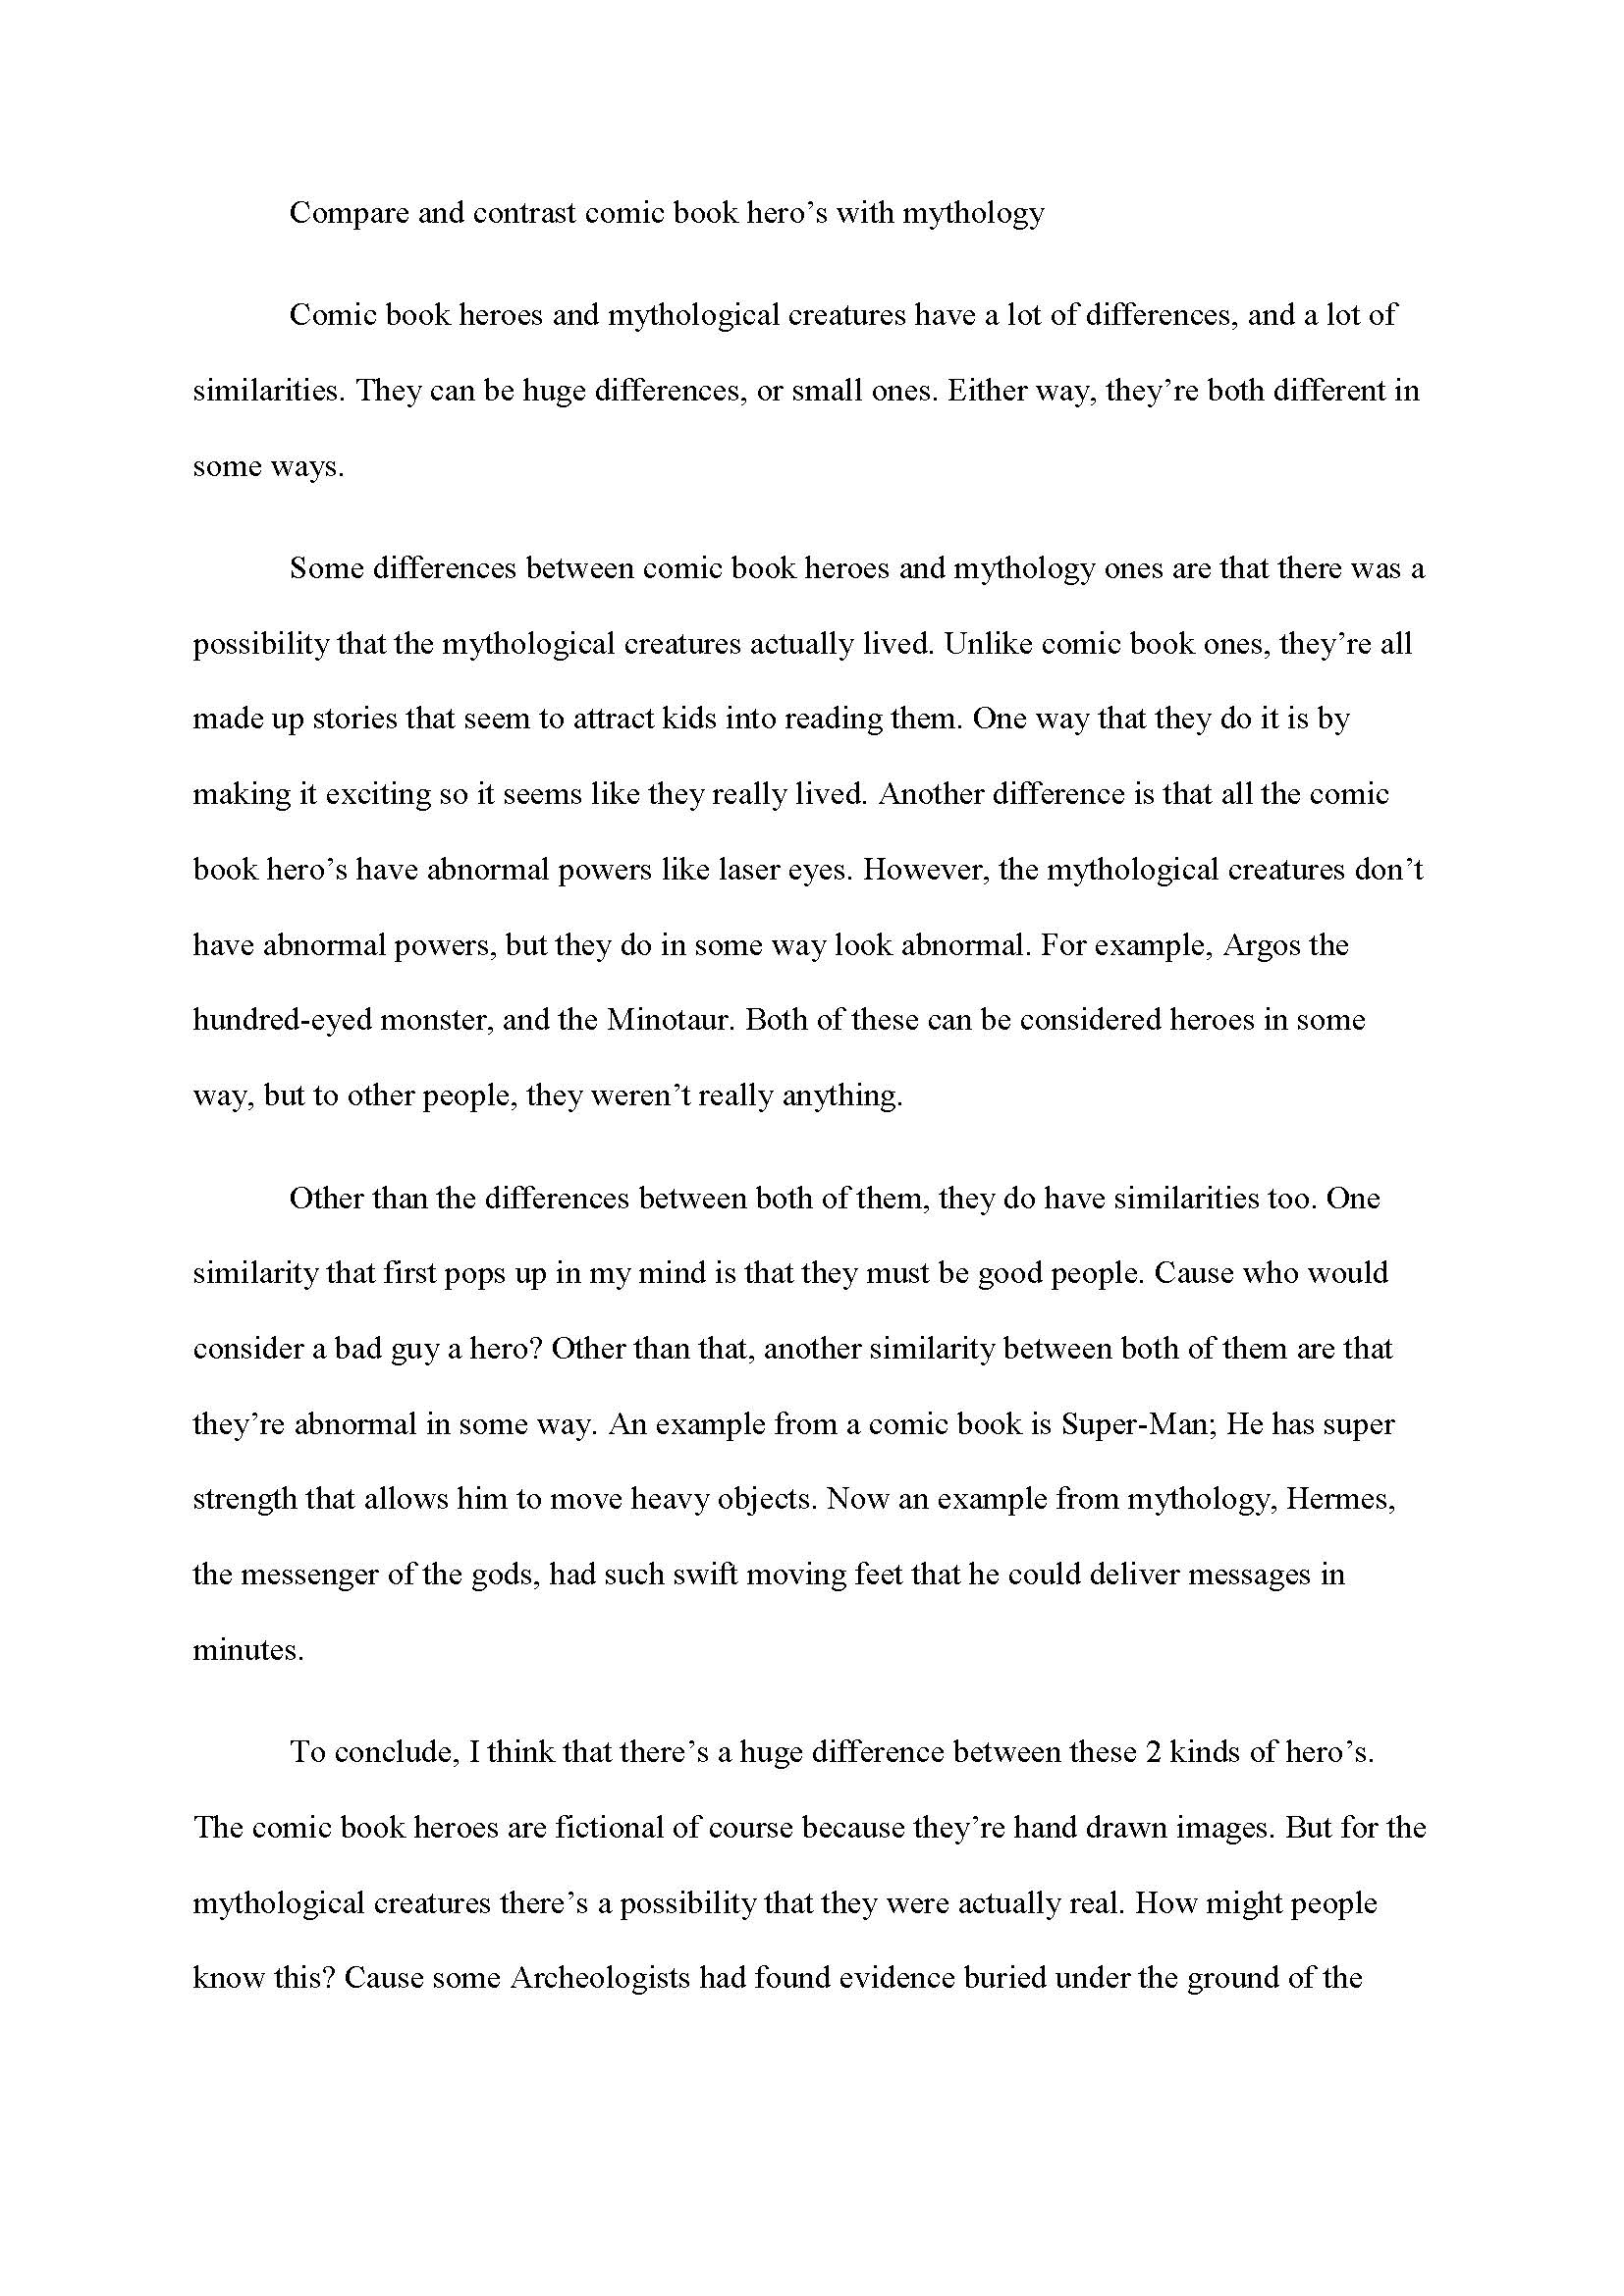 014 Essay Example Compared Contrast Sample How To Start Of Breathtaking An Argumentative About Yourself For Scholarship Analysis On A Book Full